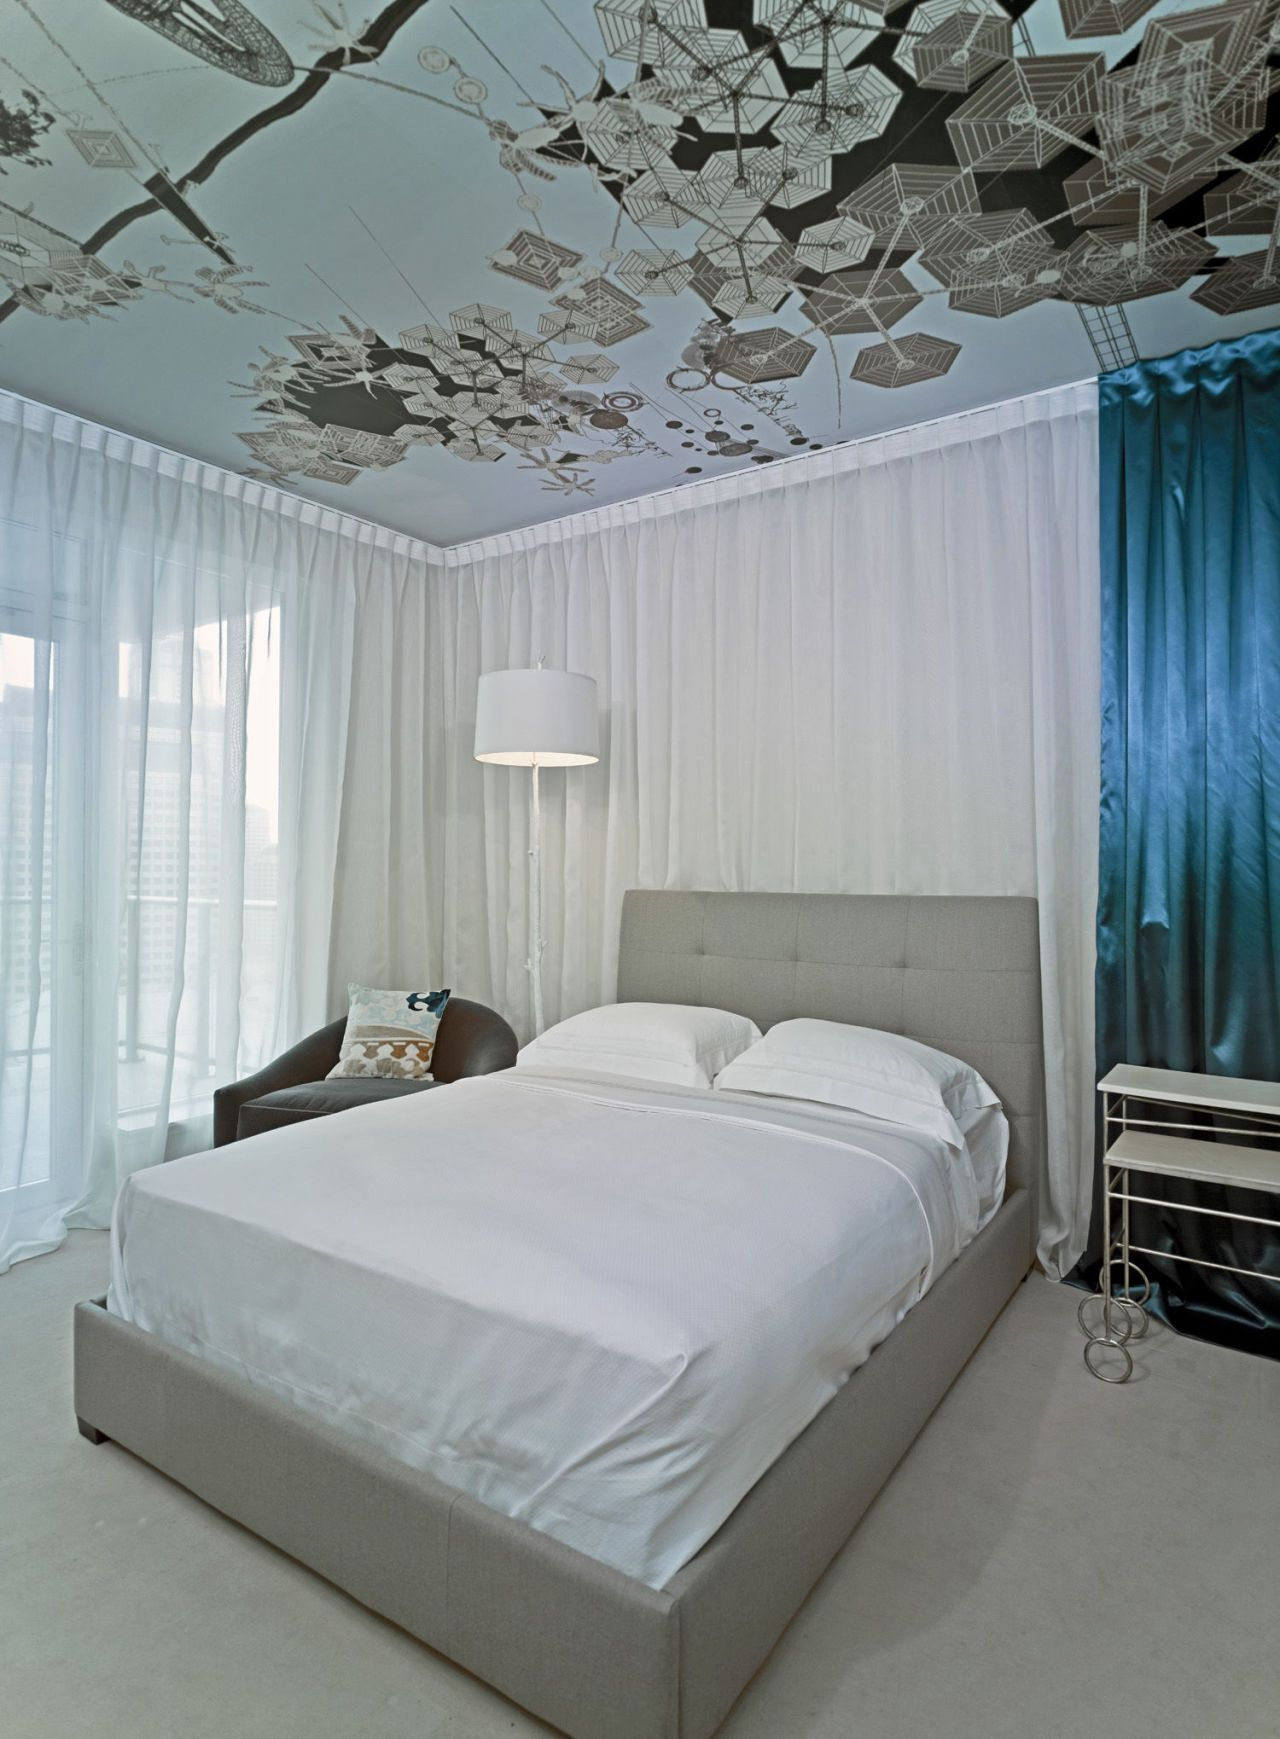 stunning bedrooms stunning bedrooms 10 Secrets For Creating Unbelievably Stunning Bedrooms gallery 1454973193 gettyimages 188074853